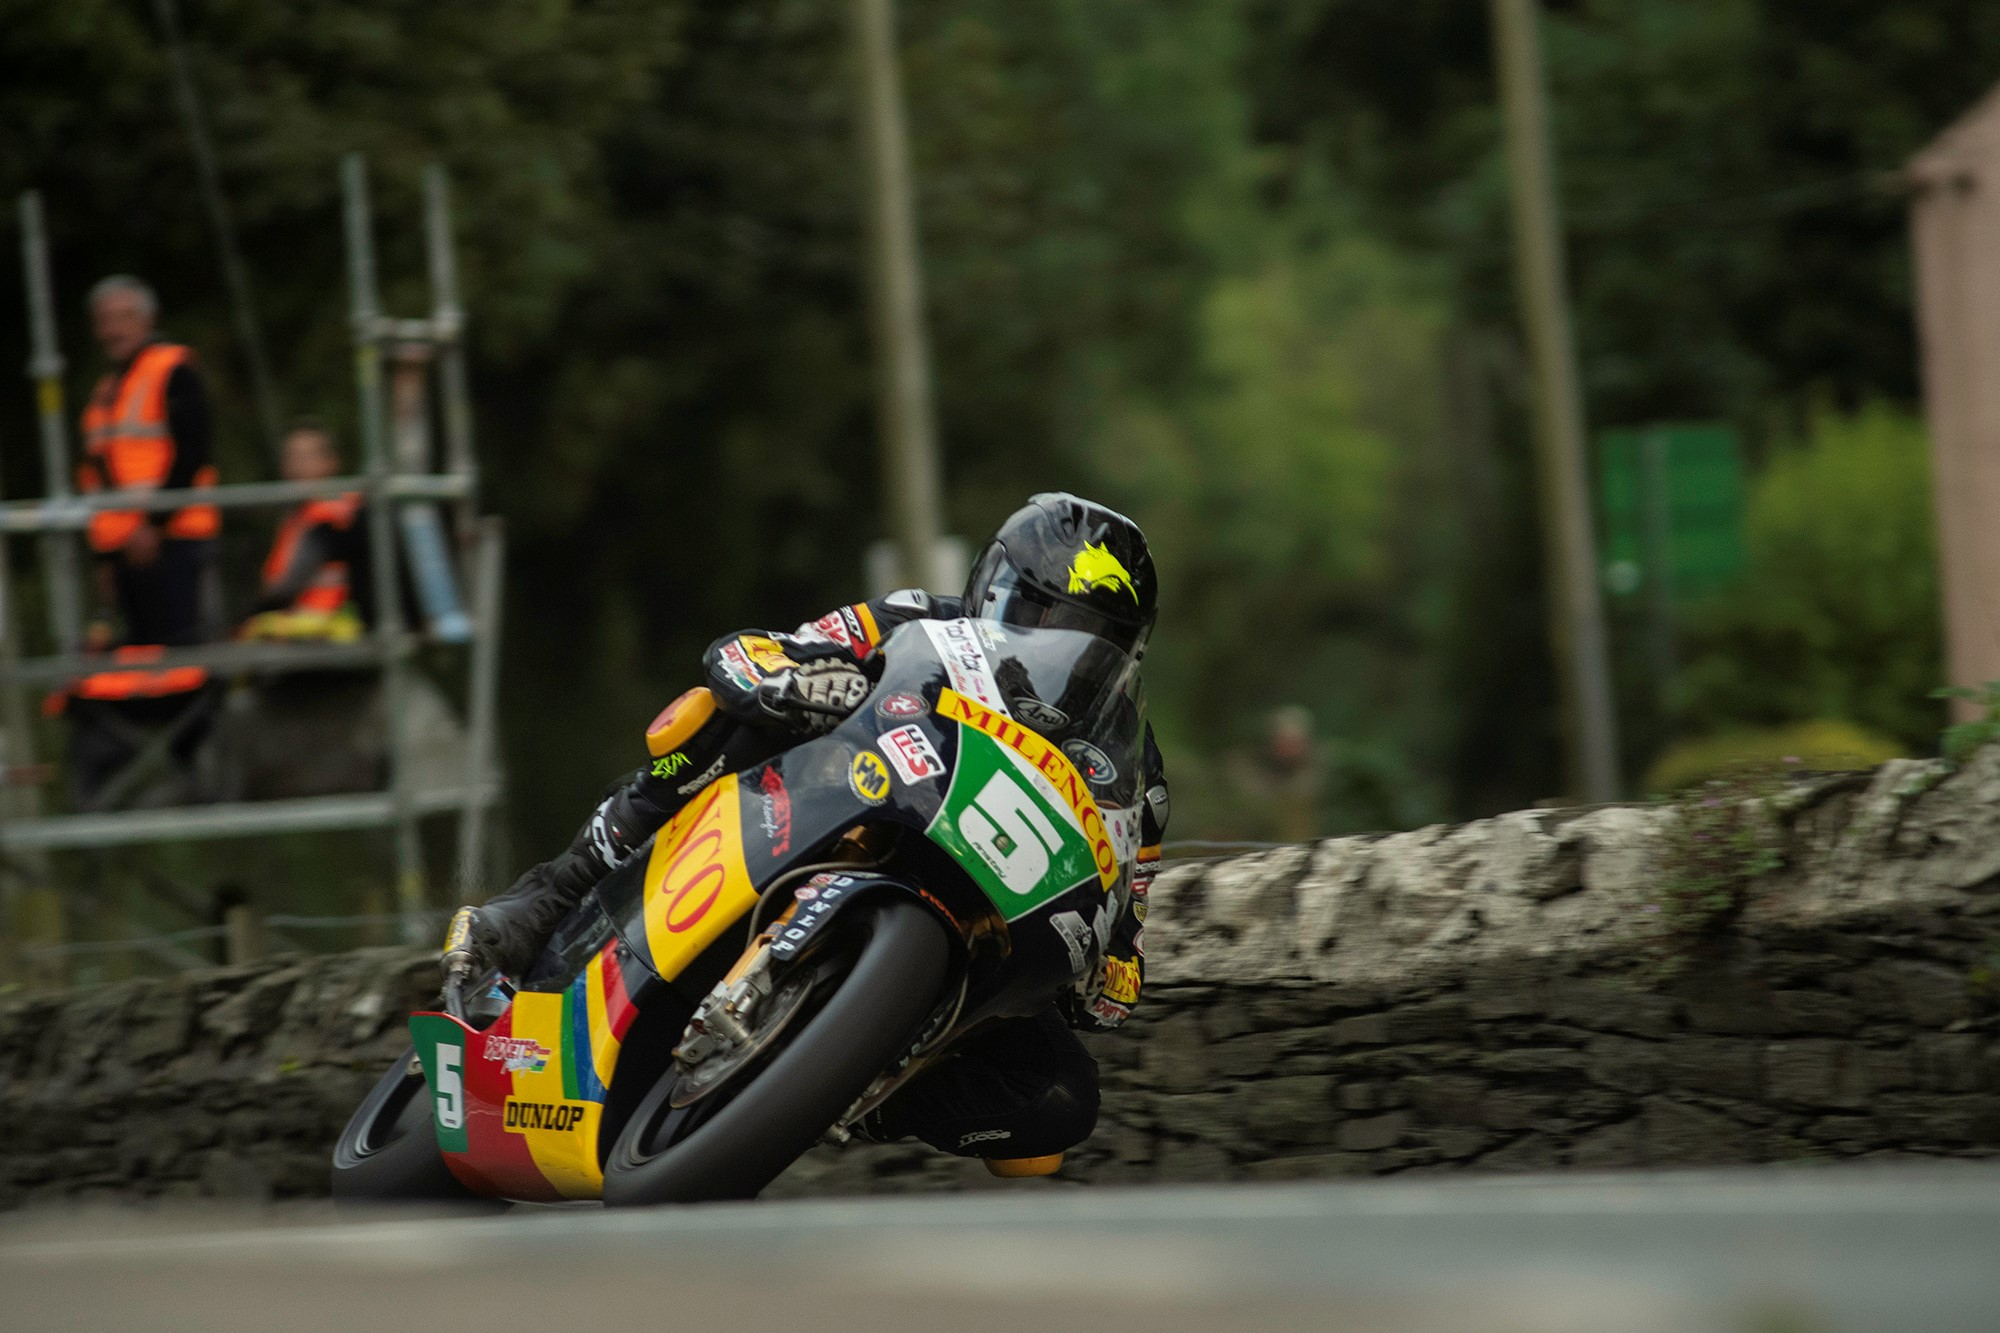 Three Lap Junior, Lightweight Races Amongst Various Schedule Changes For 2020 Classic TT